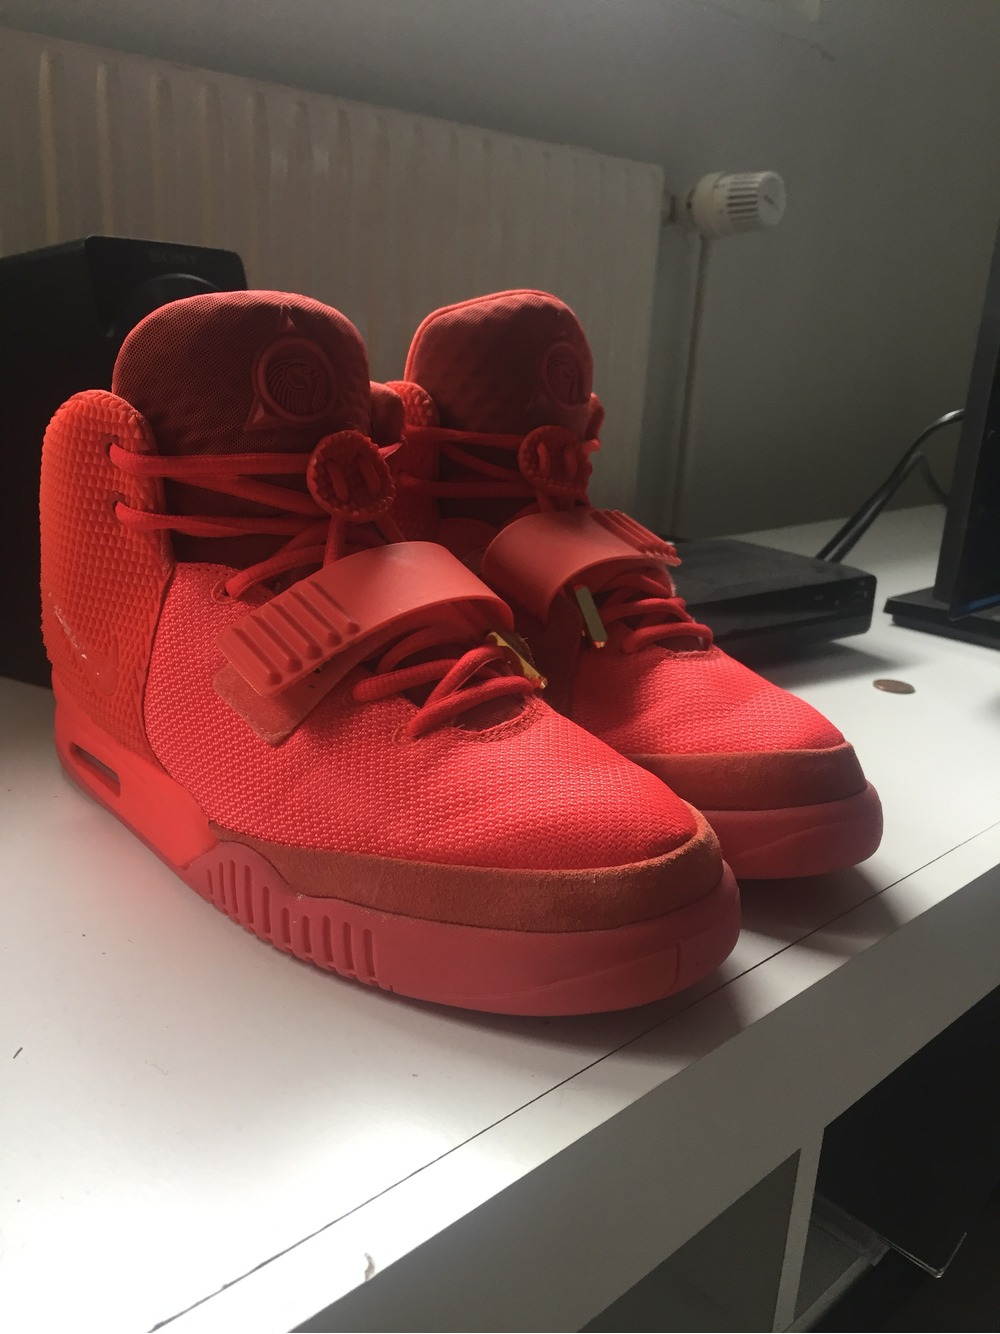 nike air yeezy red october 2